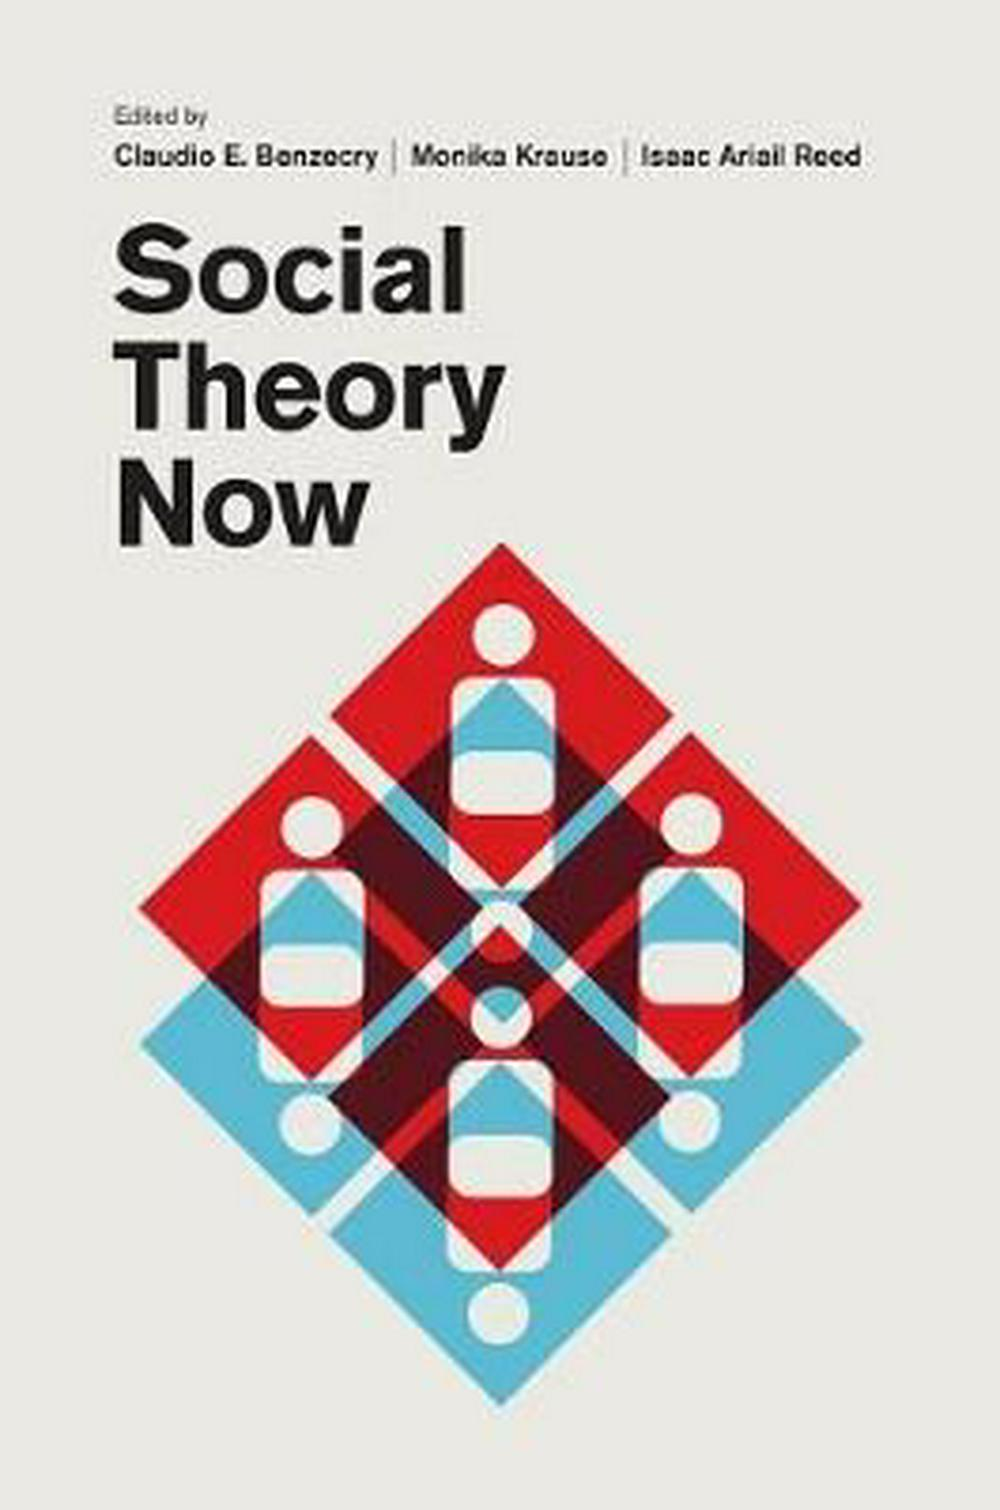 Social Theory Now